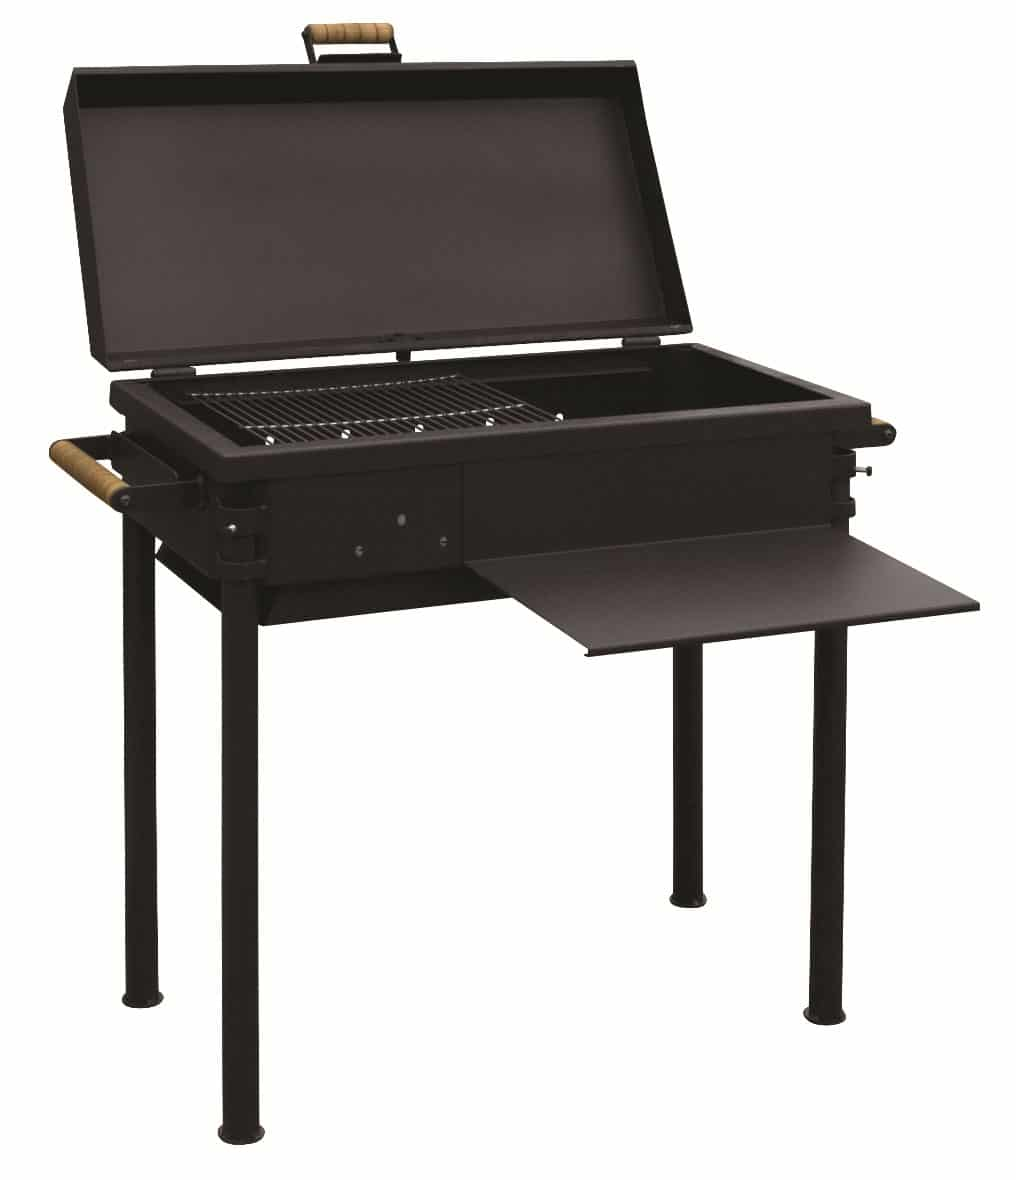 stoveman grill profi mit deckel hansagarten24. Black Bedroom Furniture Sets. Home Design Ideas